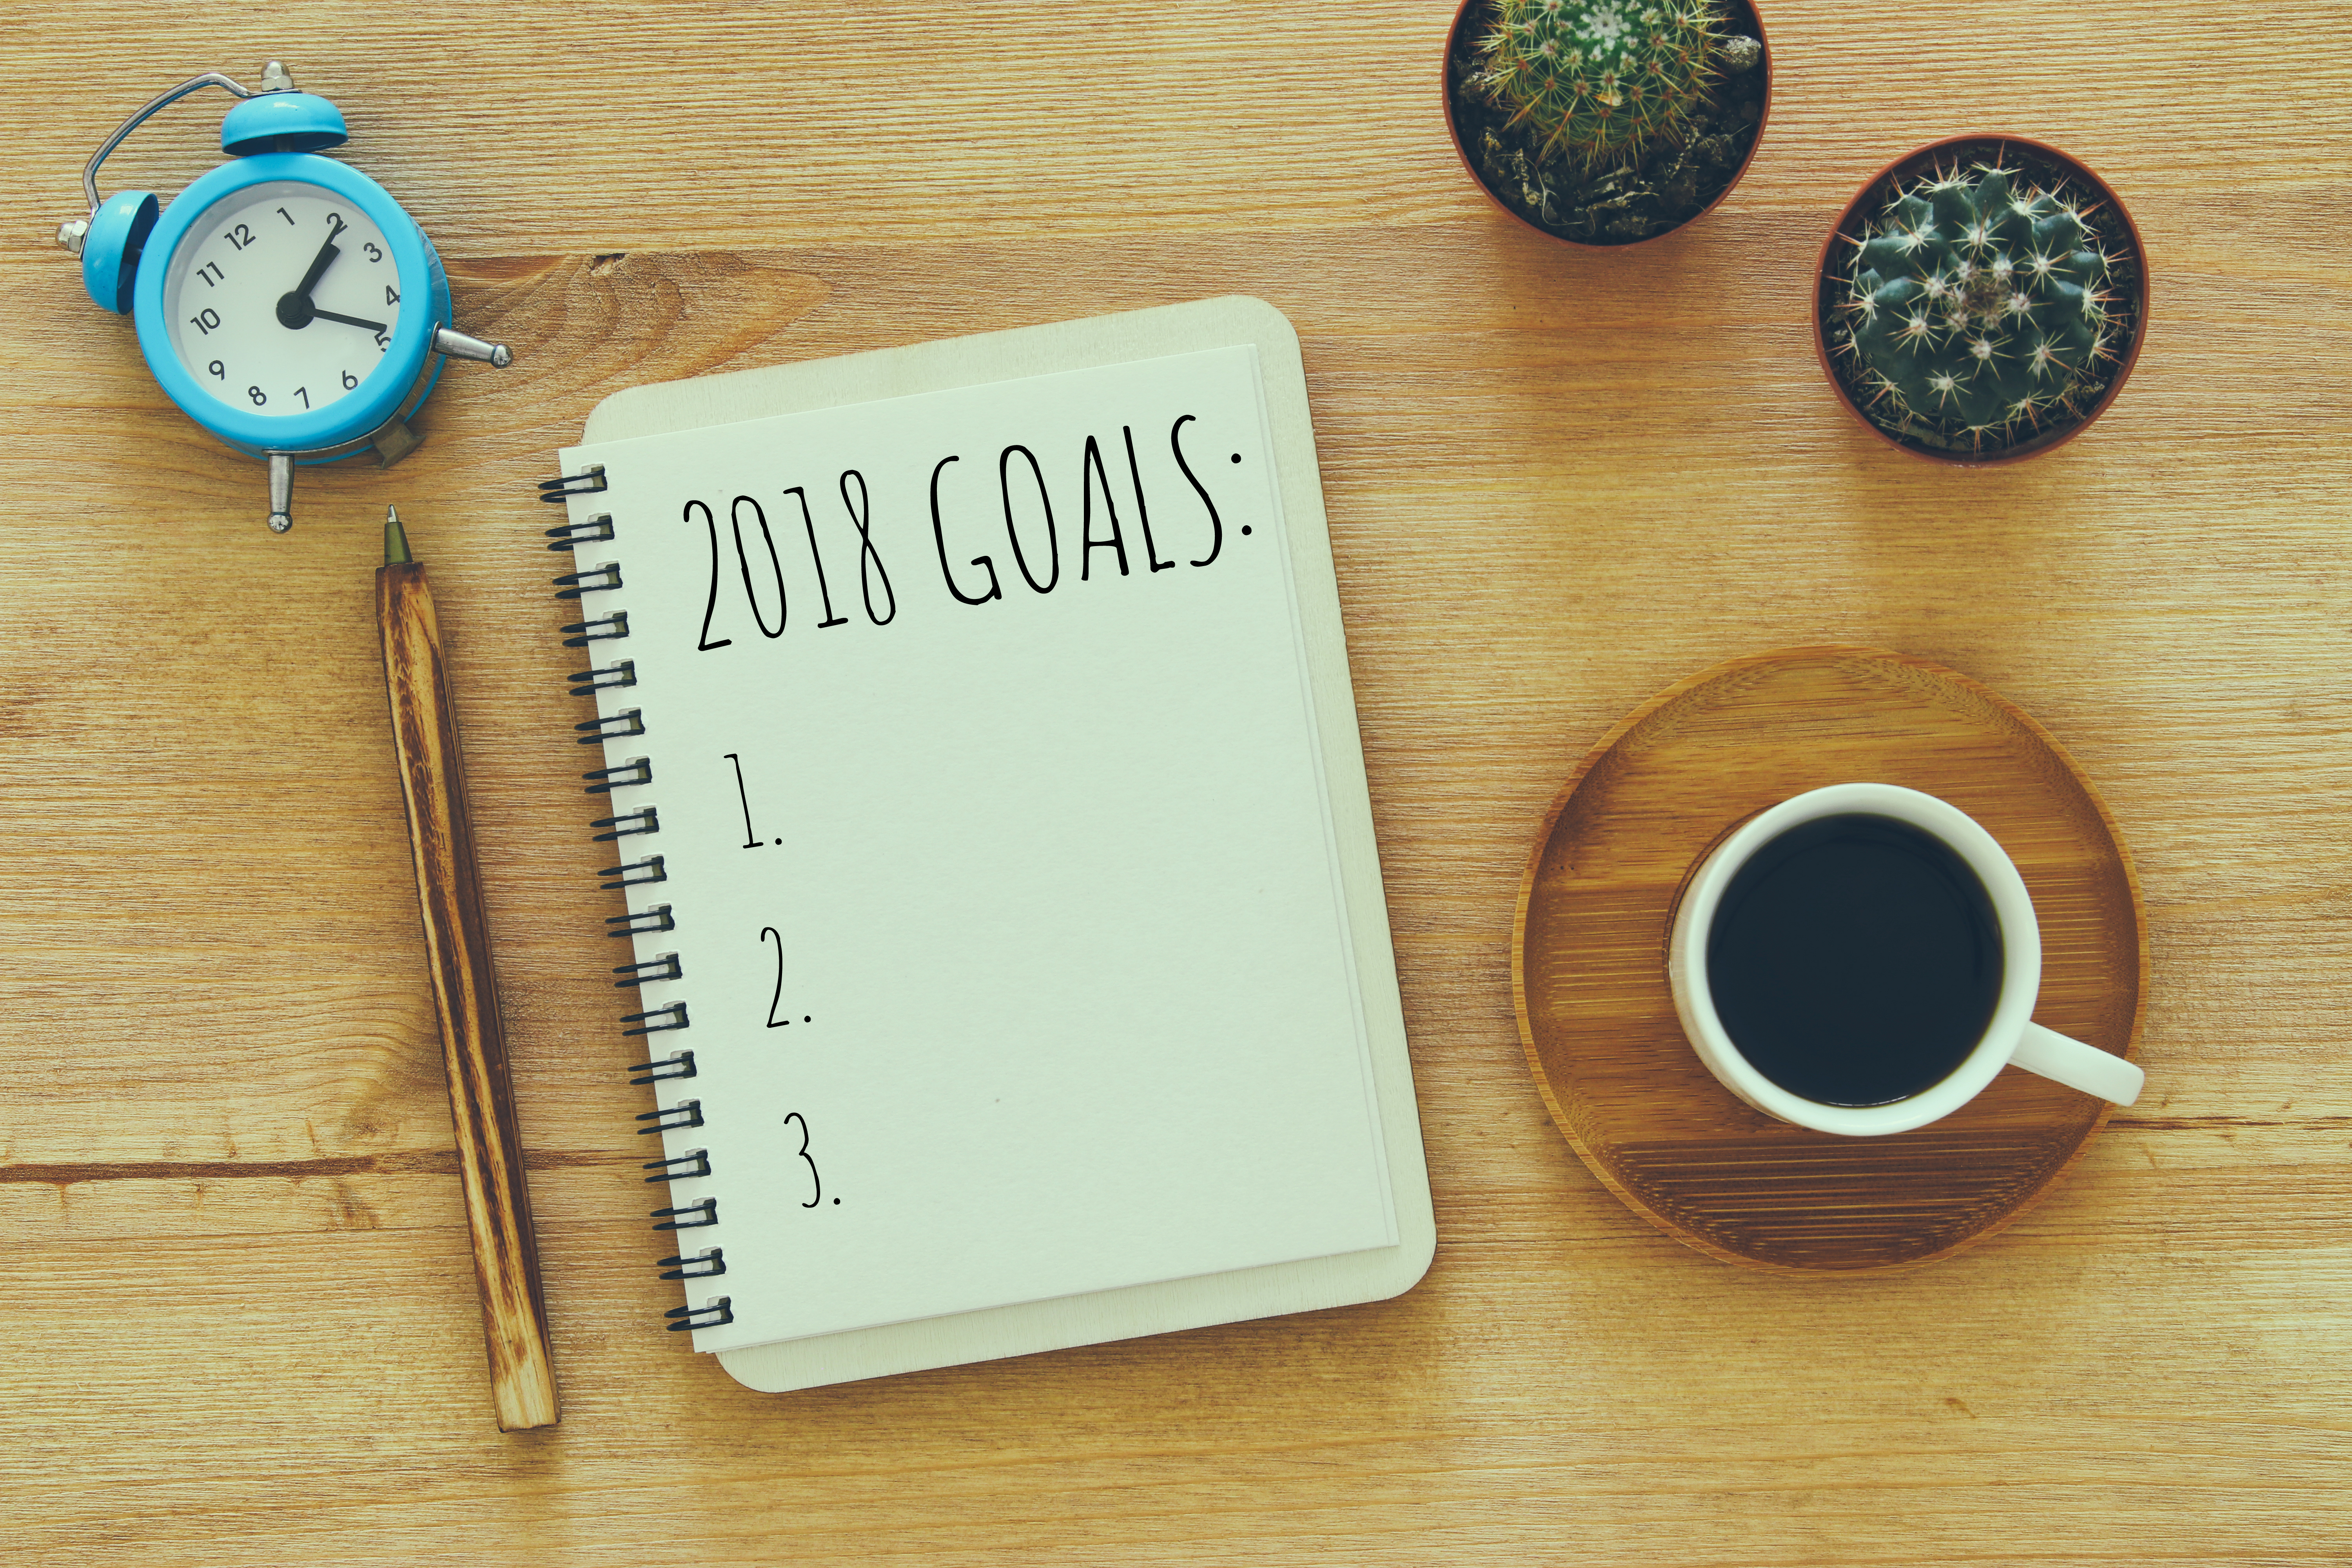 New Year's Resolutions: Make This Year Matter